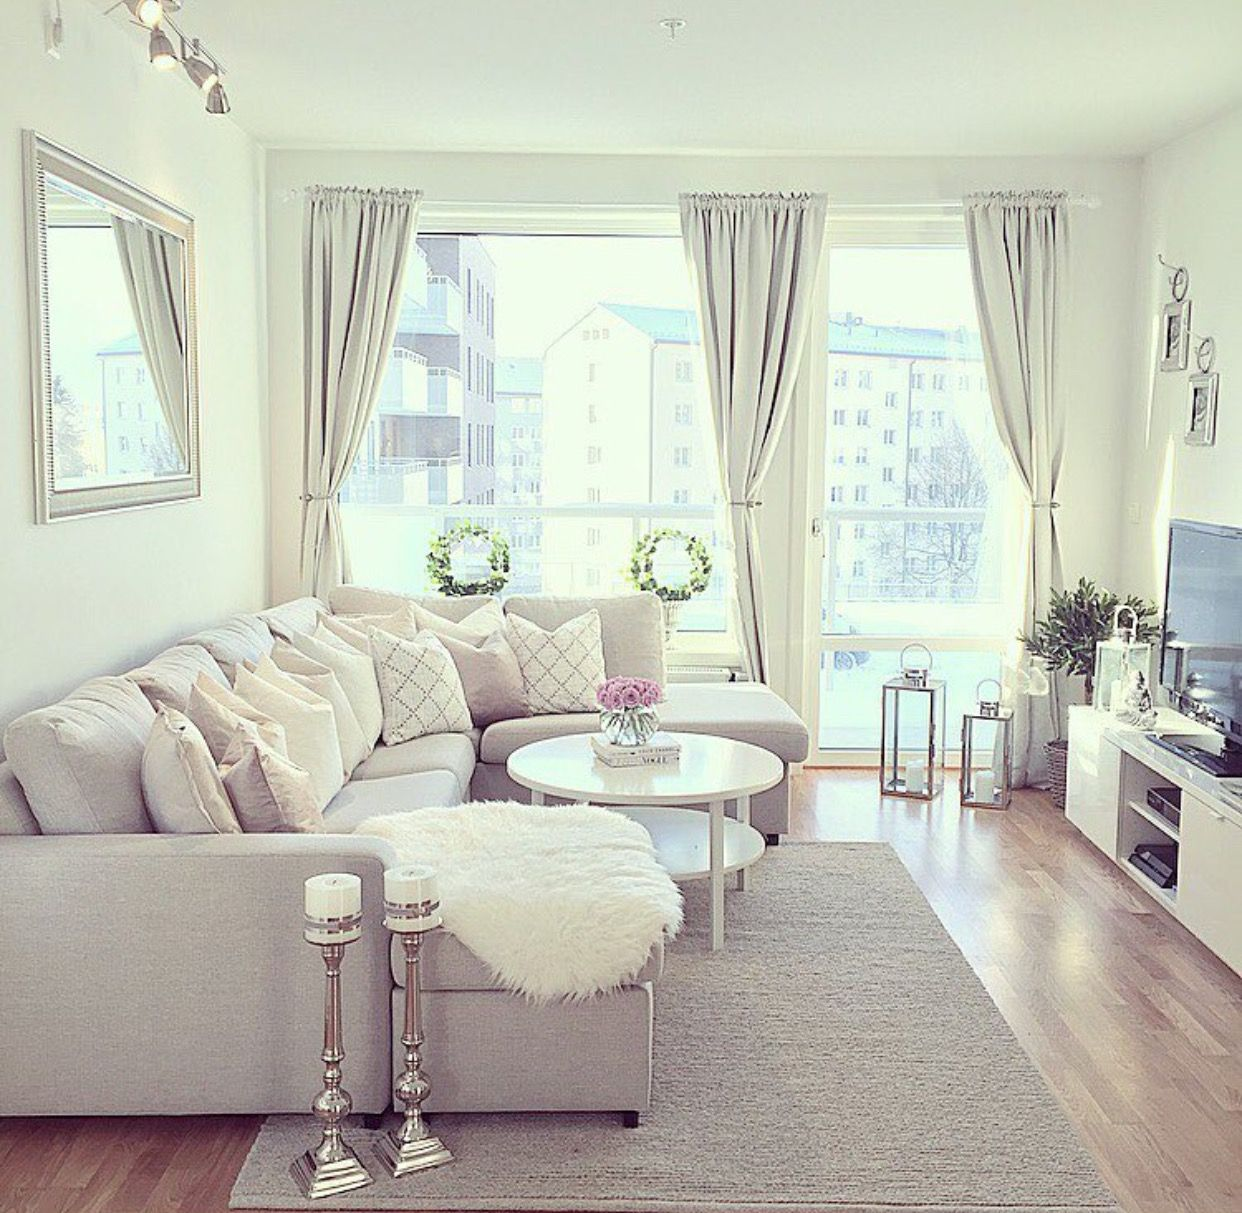 30 Small Living Room Decorating Ideas: Pin By Janica Taipalus On Olohuone